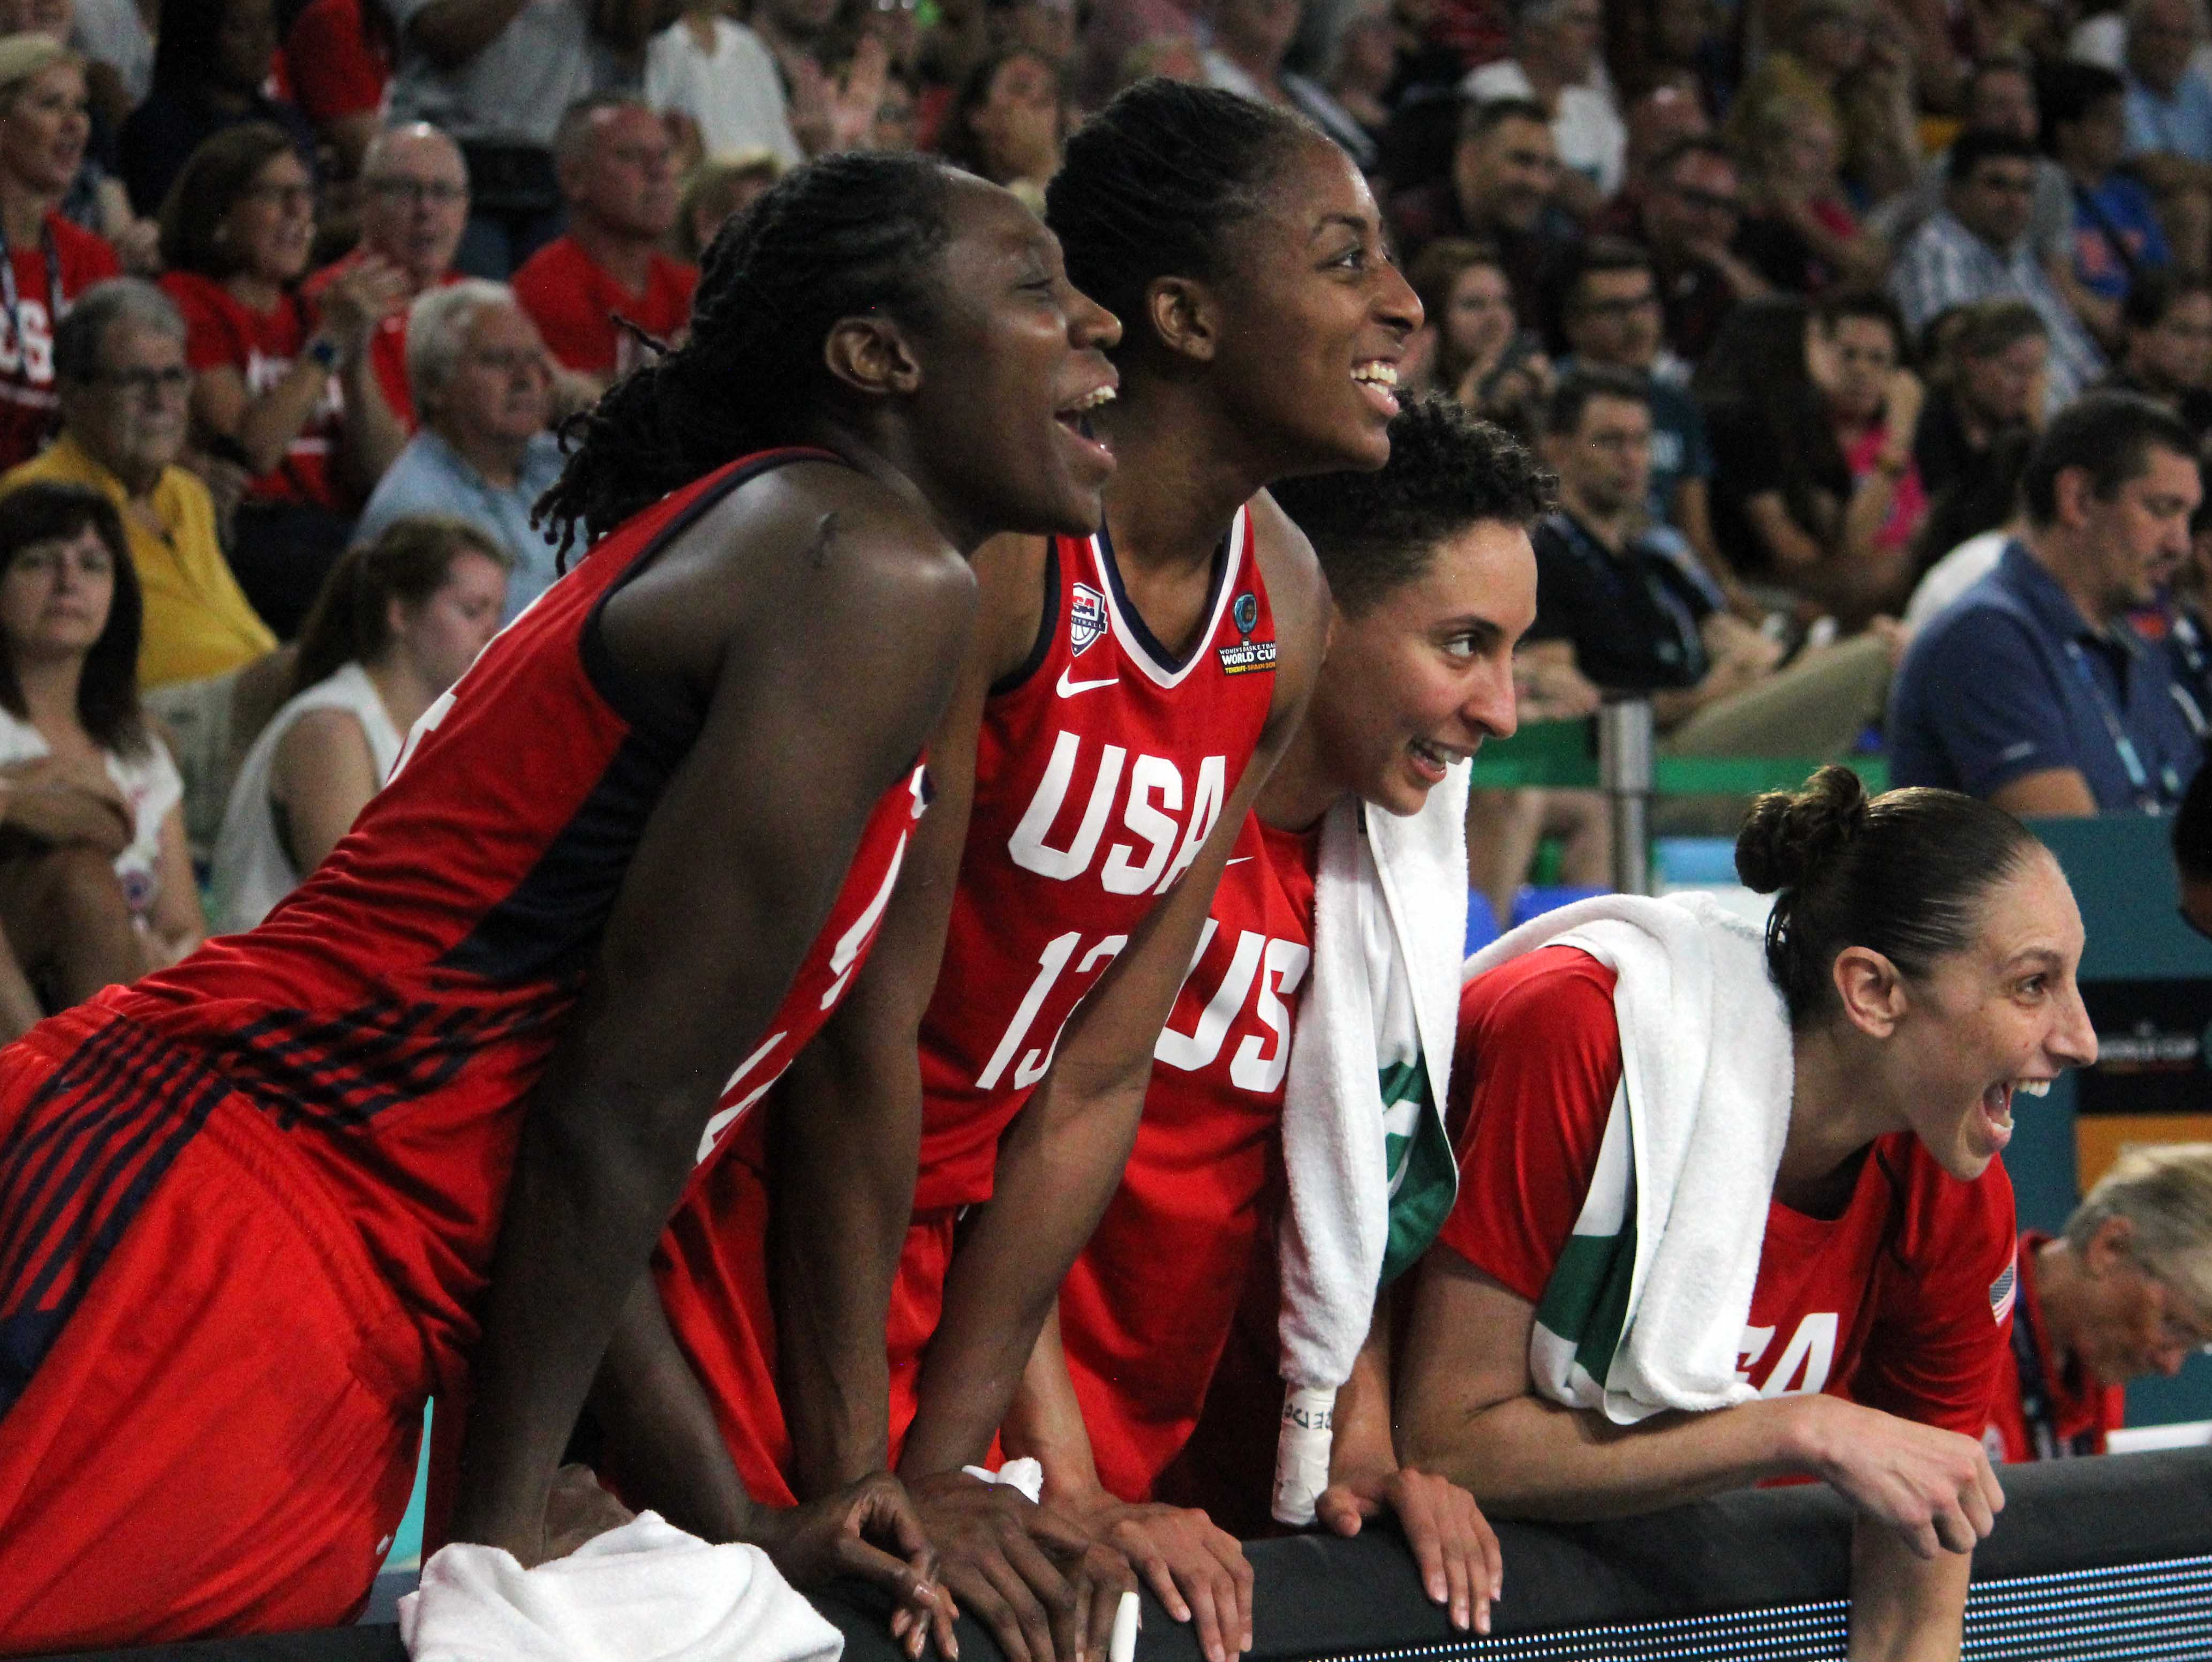 How long can the USA hang on to the top spot in women's basketball?